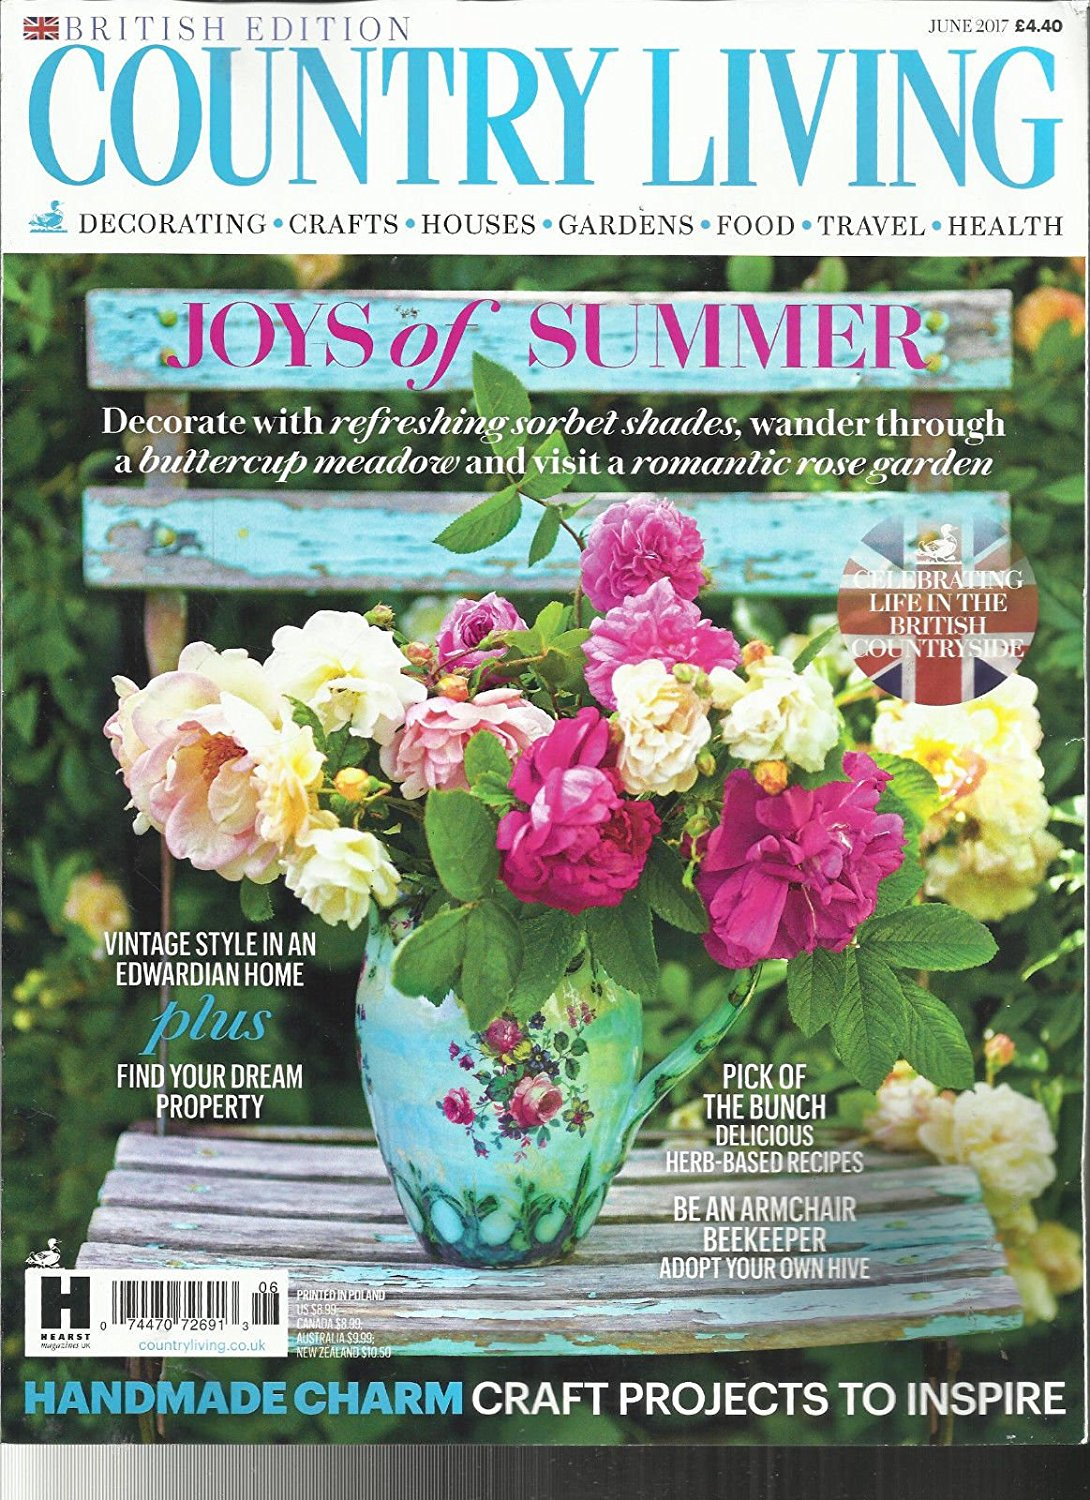 COUNTRY LIVING MAGAZINE, JUNE, 2017 BRITISH EDITION JOYS OF SUMMER